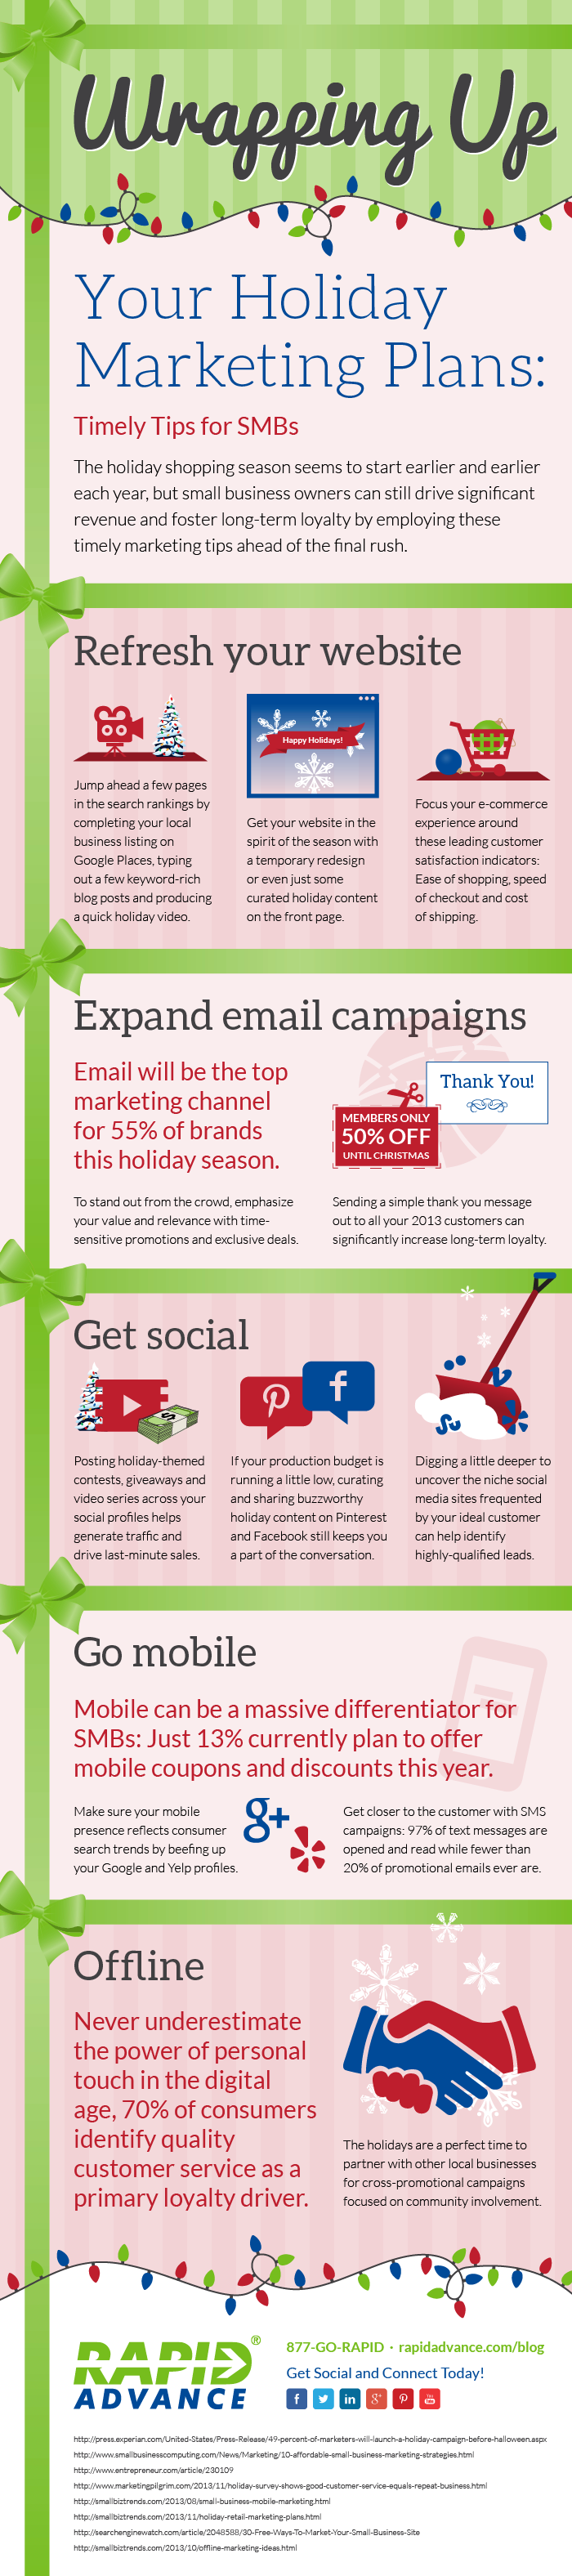 Use These Holiday Marketing Tips to Boost Customer Engagement